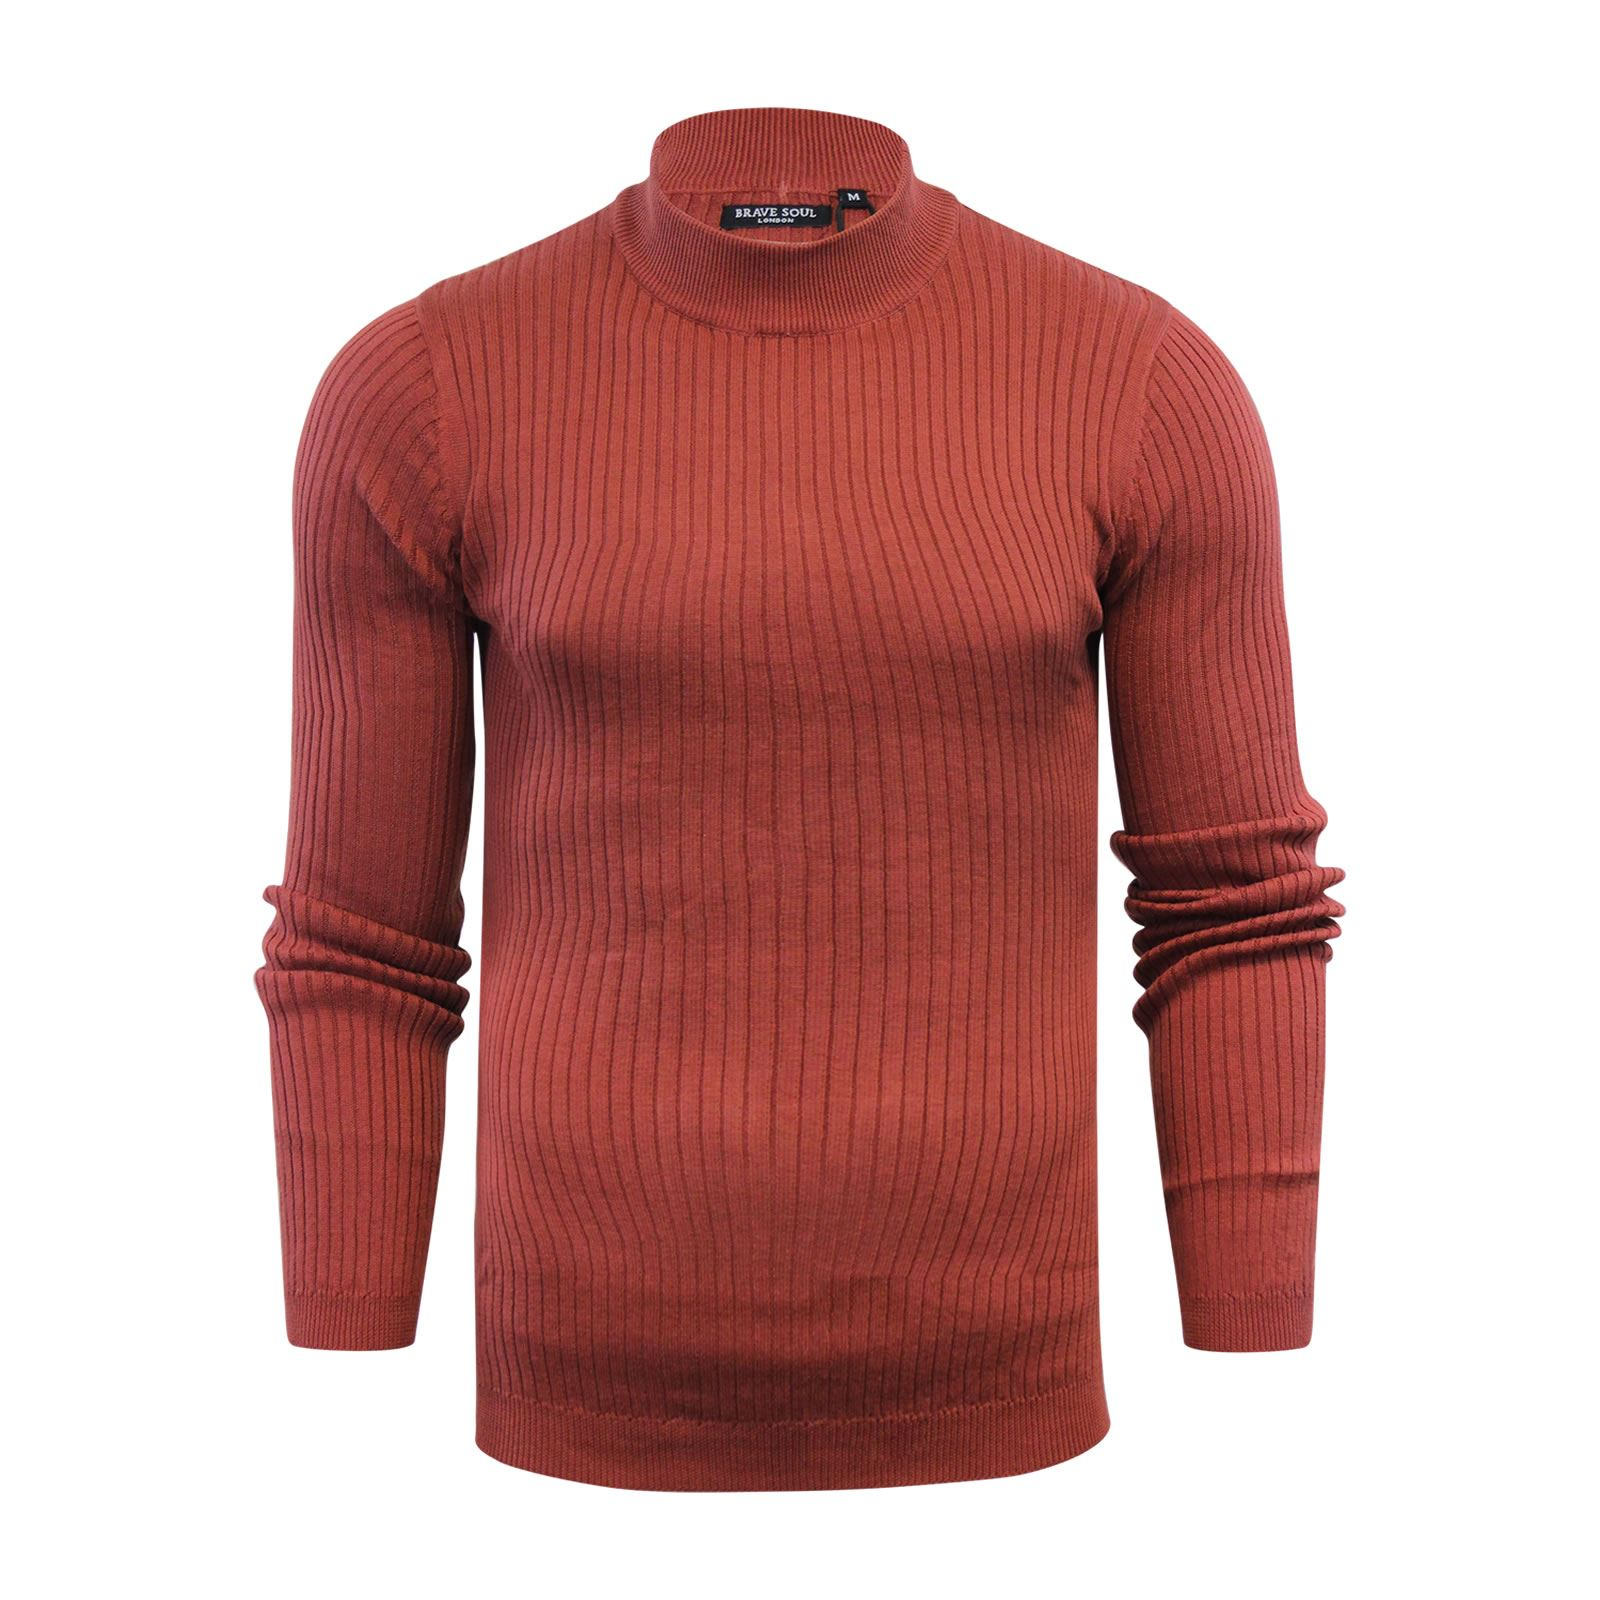 Mens-Jumper-Brave-Soul-Knitted-Sweater-In-Various-Styles thumbnail 88